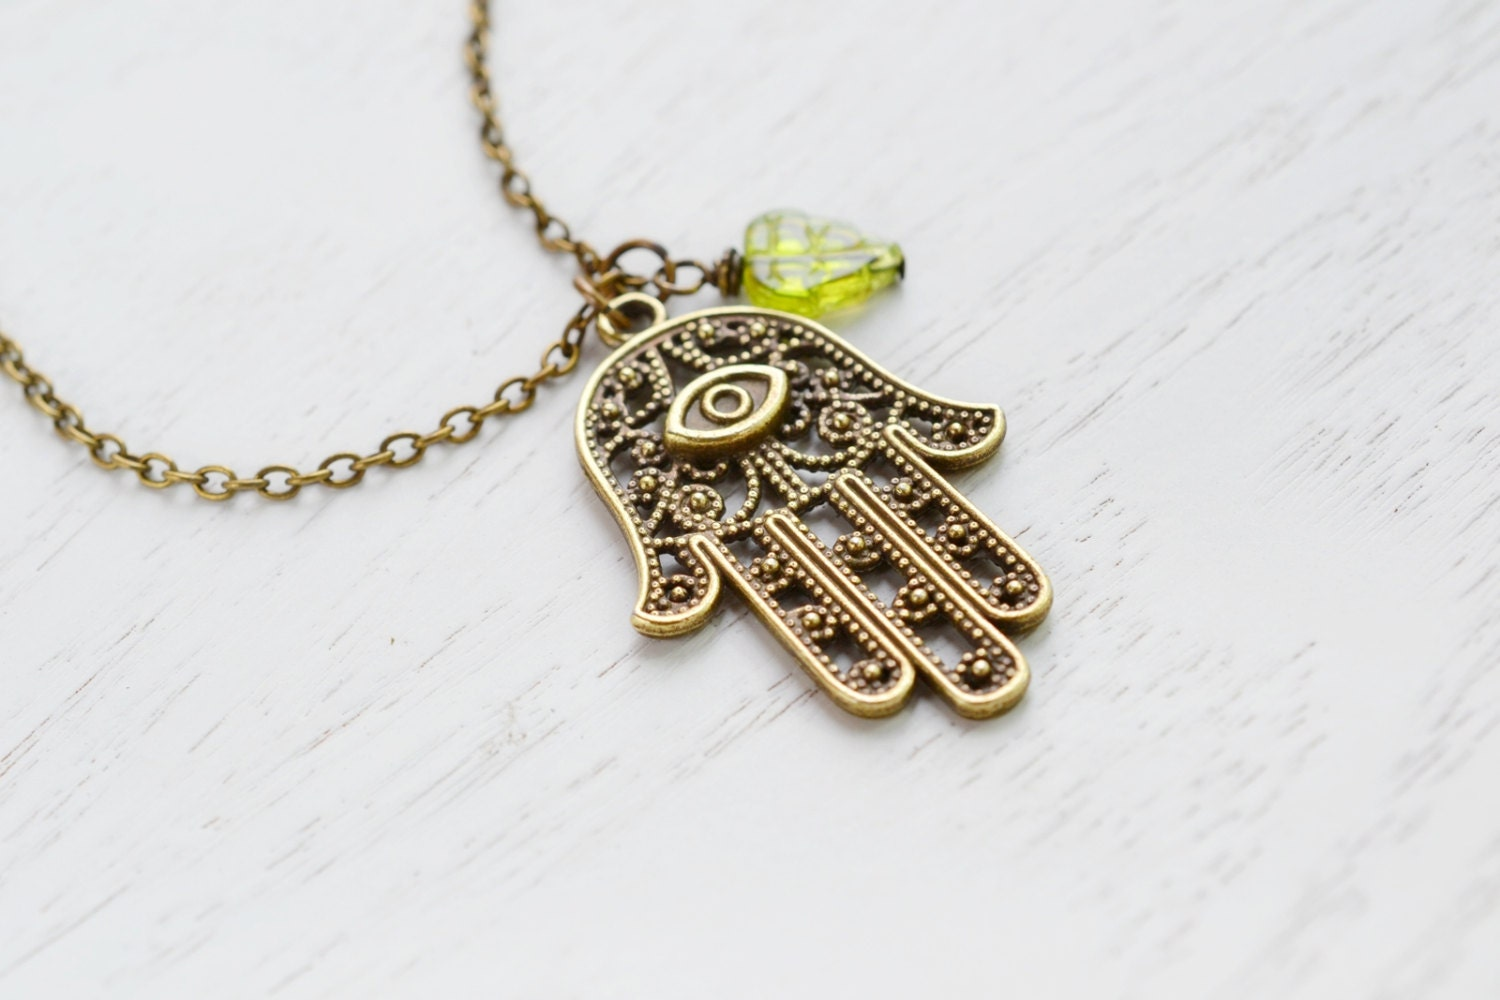 Hamsa Necklace,Hand of Fatima,Hamsa Charm Necklace,Amulet Pendant,Protection from Hamsa Om...